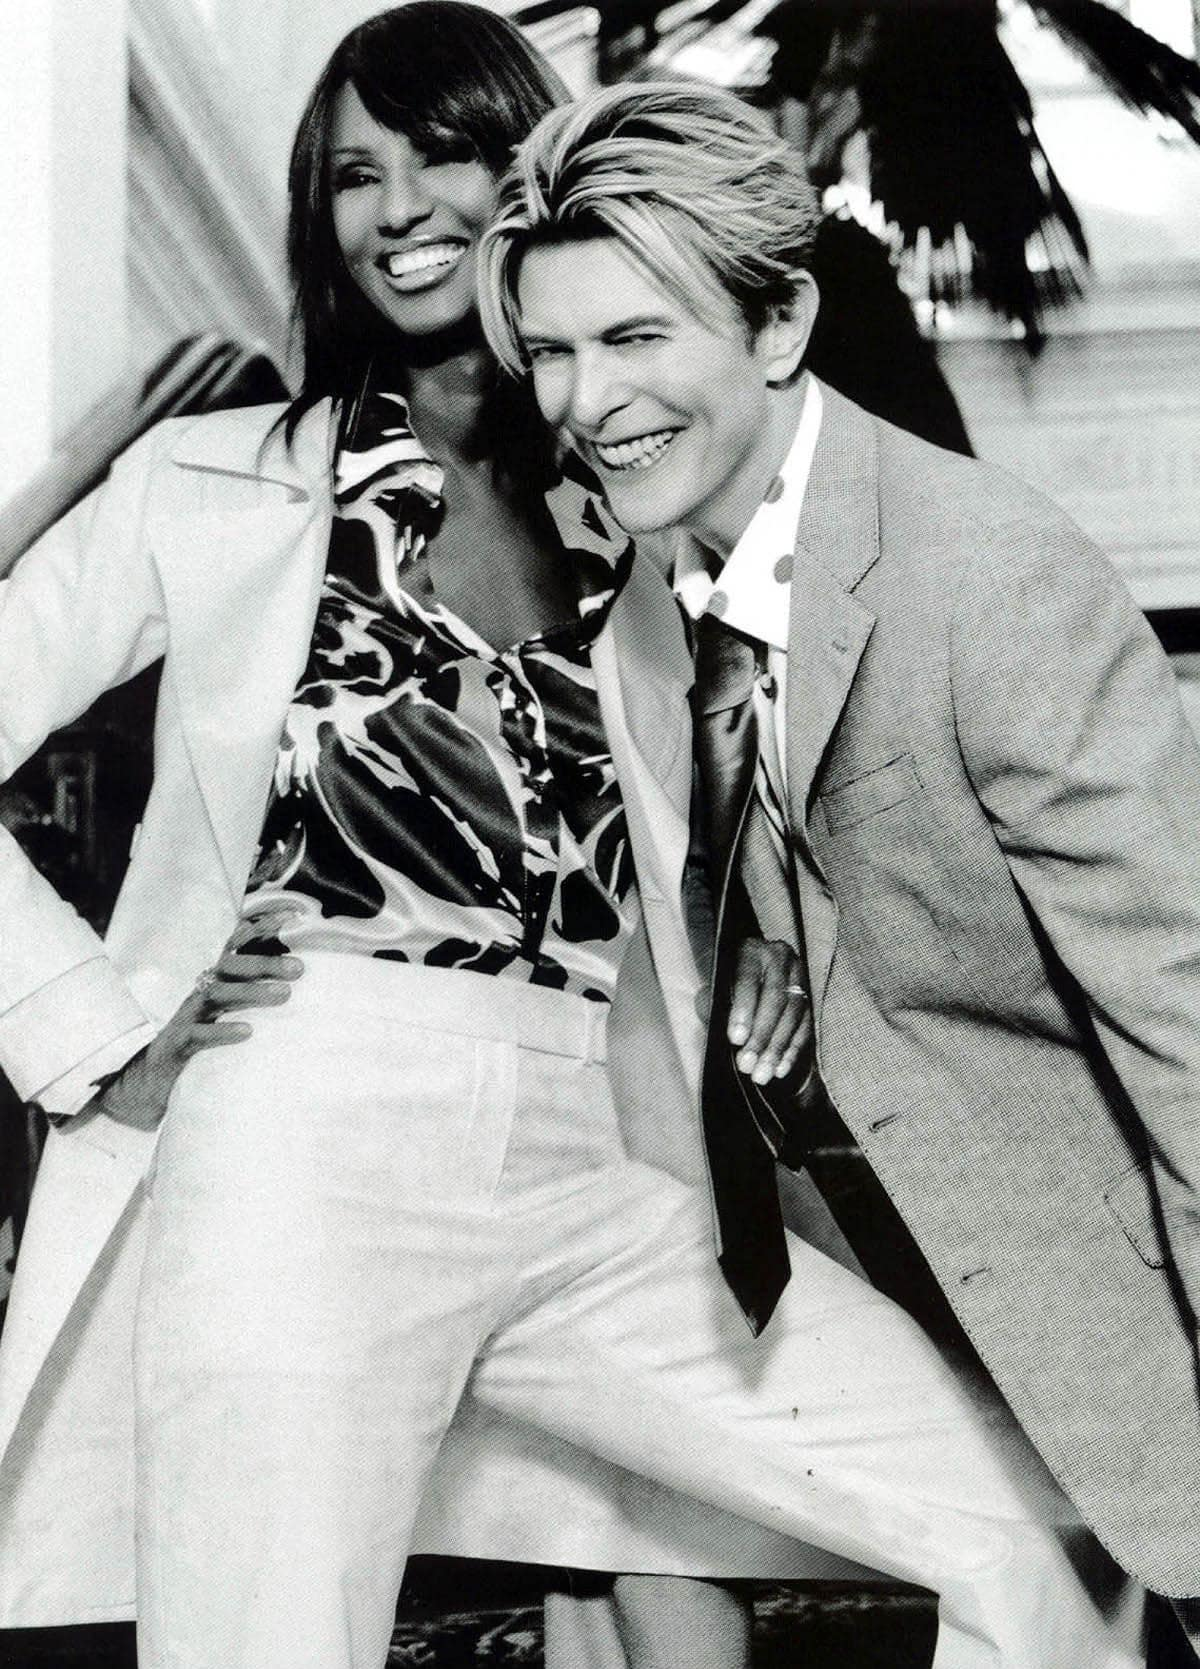 Iman and David Bowie get romantic in a print advertisement for Tommy Hilfiger's Spring 2004 collection